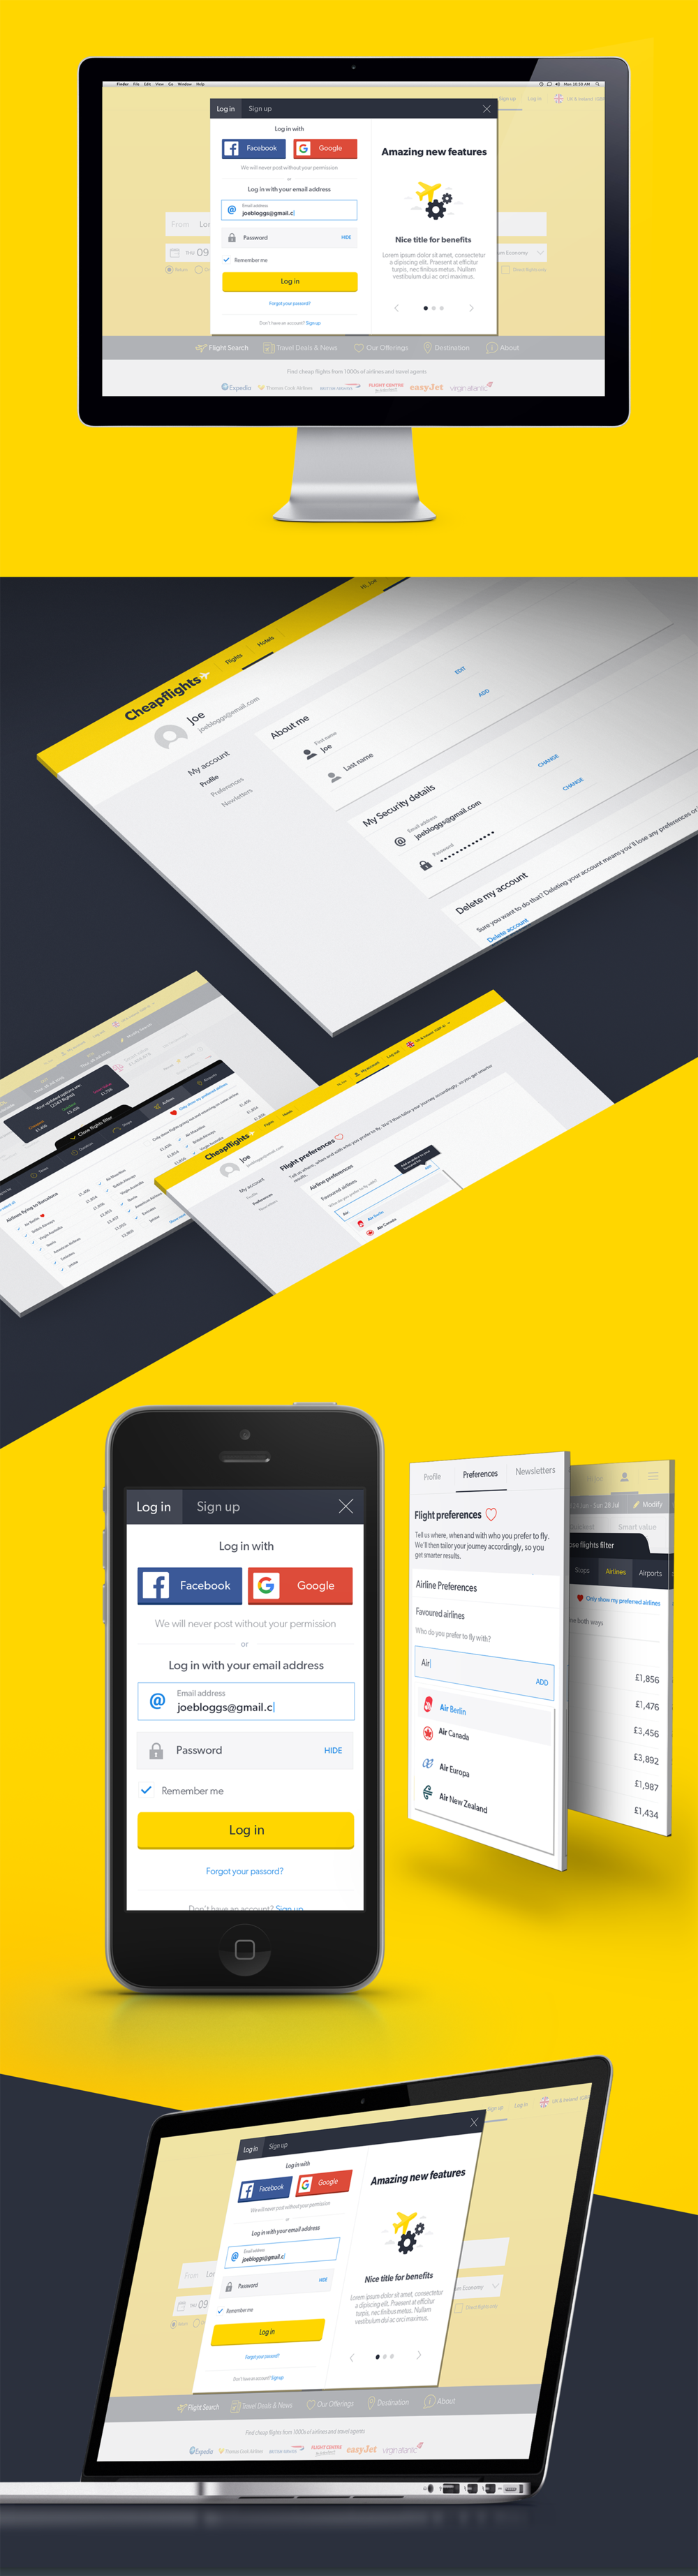 Responsive design for personalisation